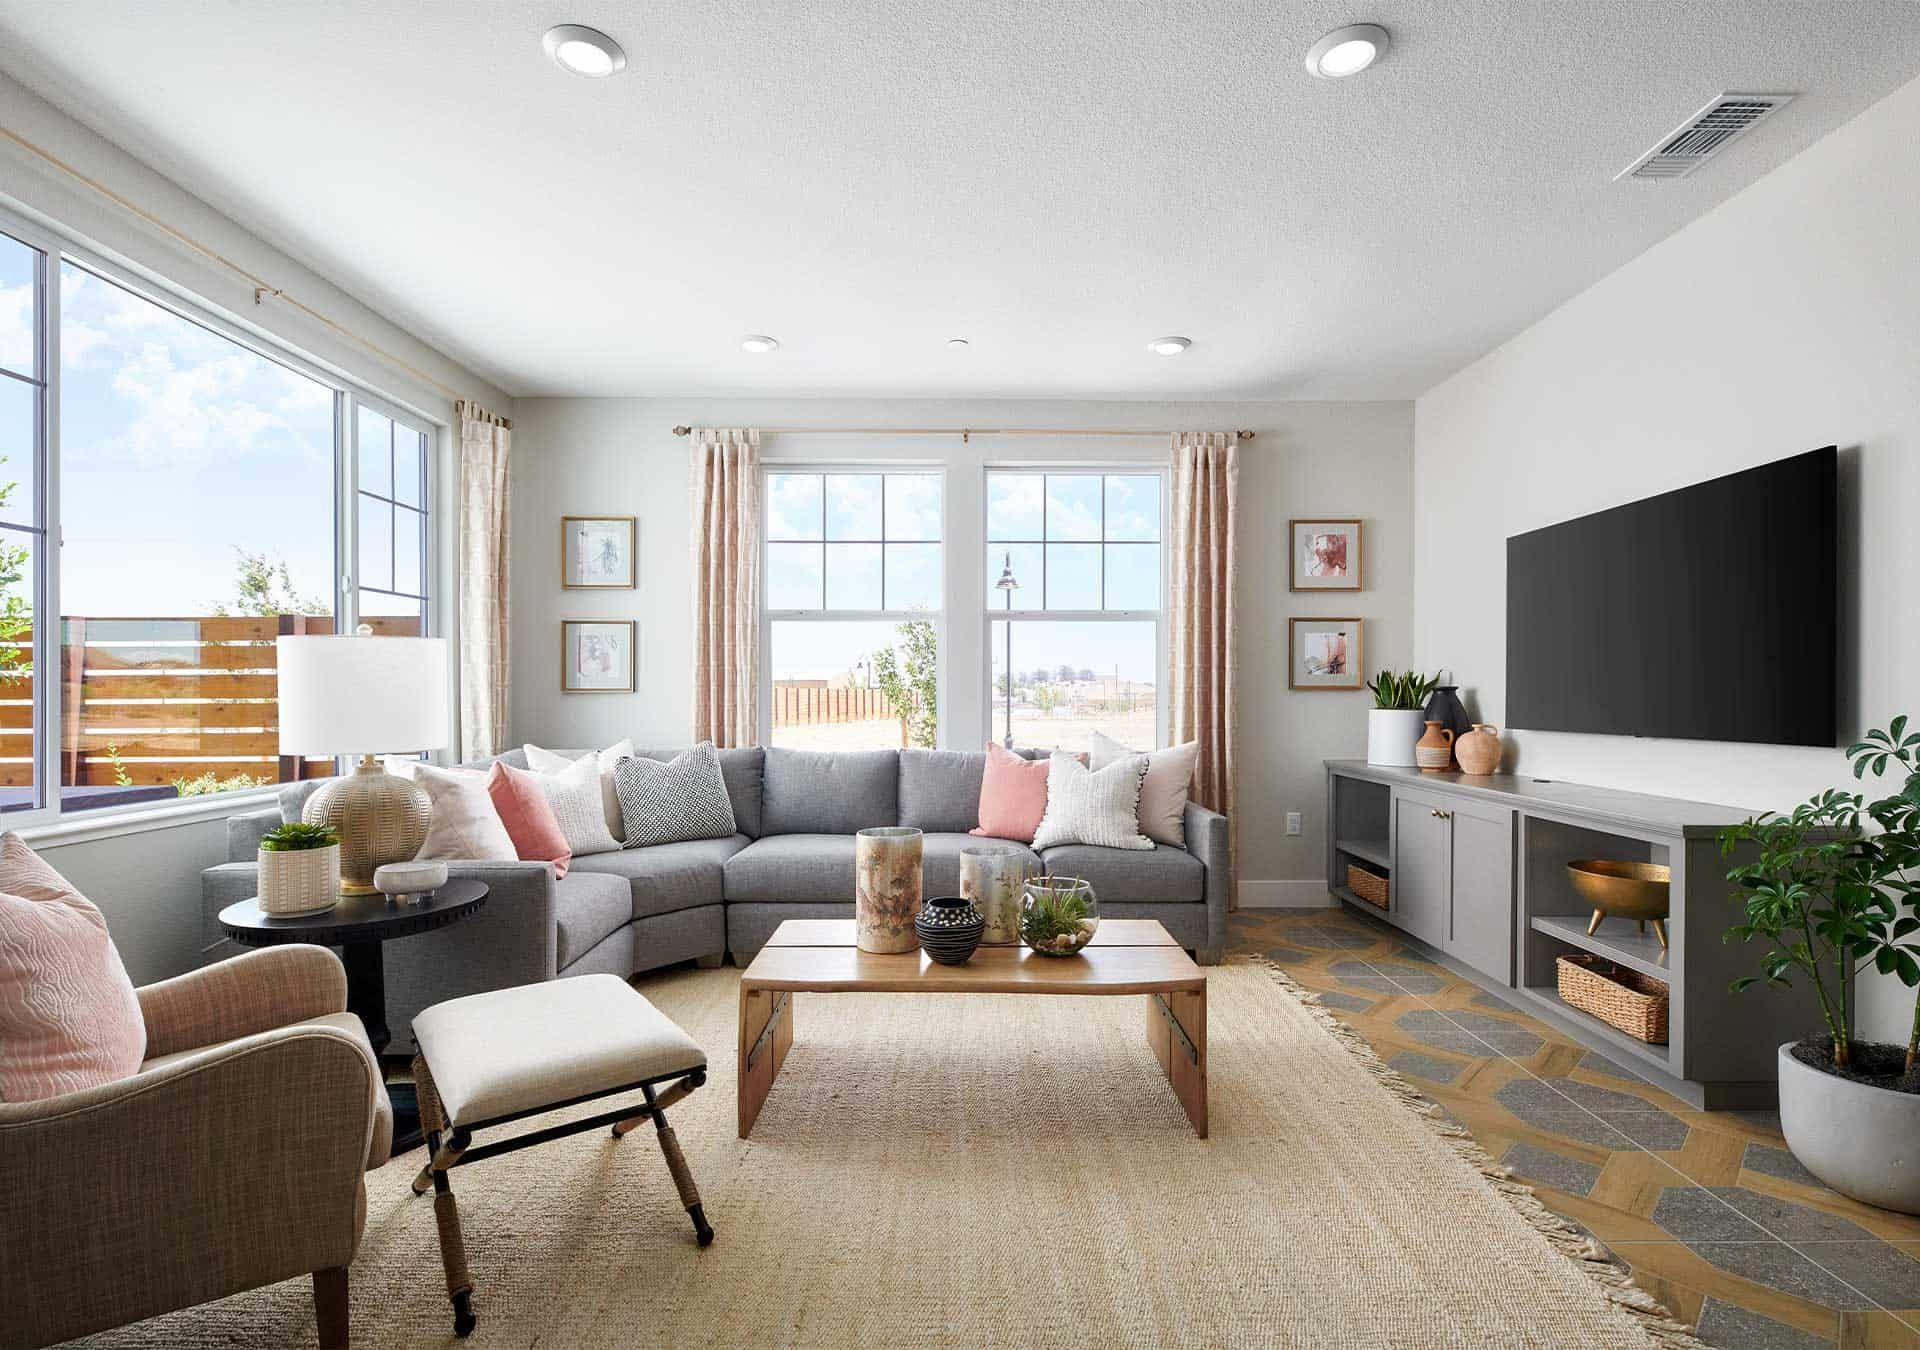 Living Area featured in the Plan 2 By Tri Pointe Homes in Vallejo-Napa, CA